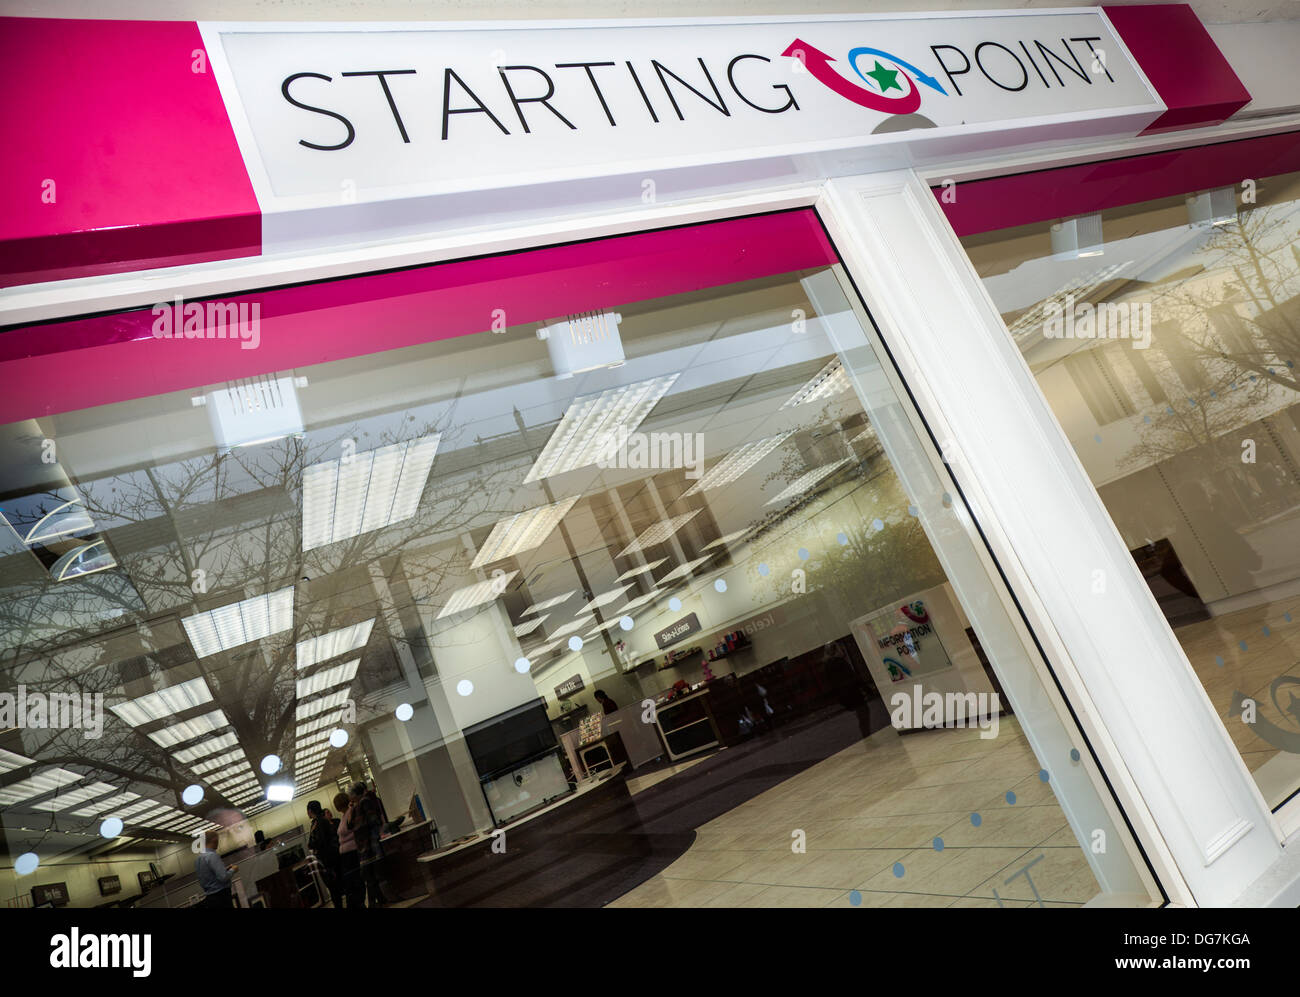 Starting Point is an innovative scheme launched by Town Centre Activities, a regeneration company for business start-ups Airdrie, North Lanarkshire,UK - Stock Image